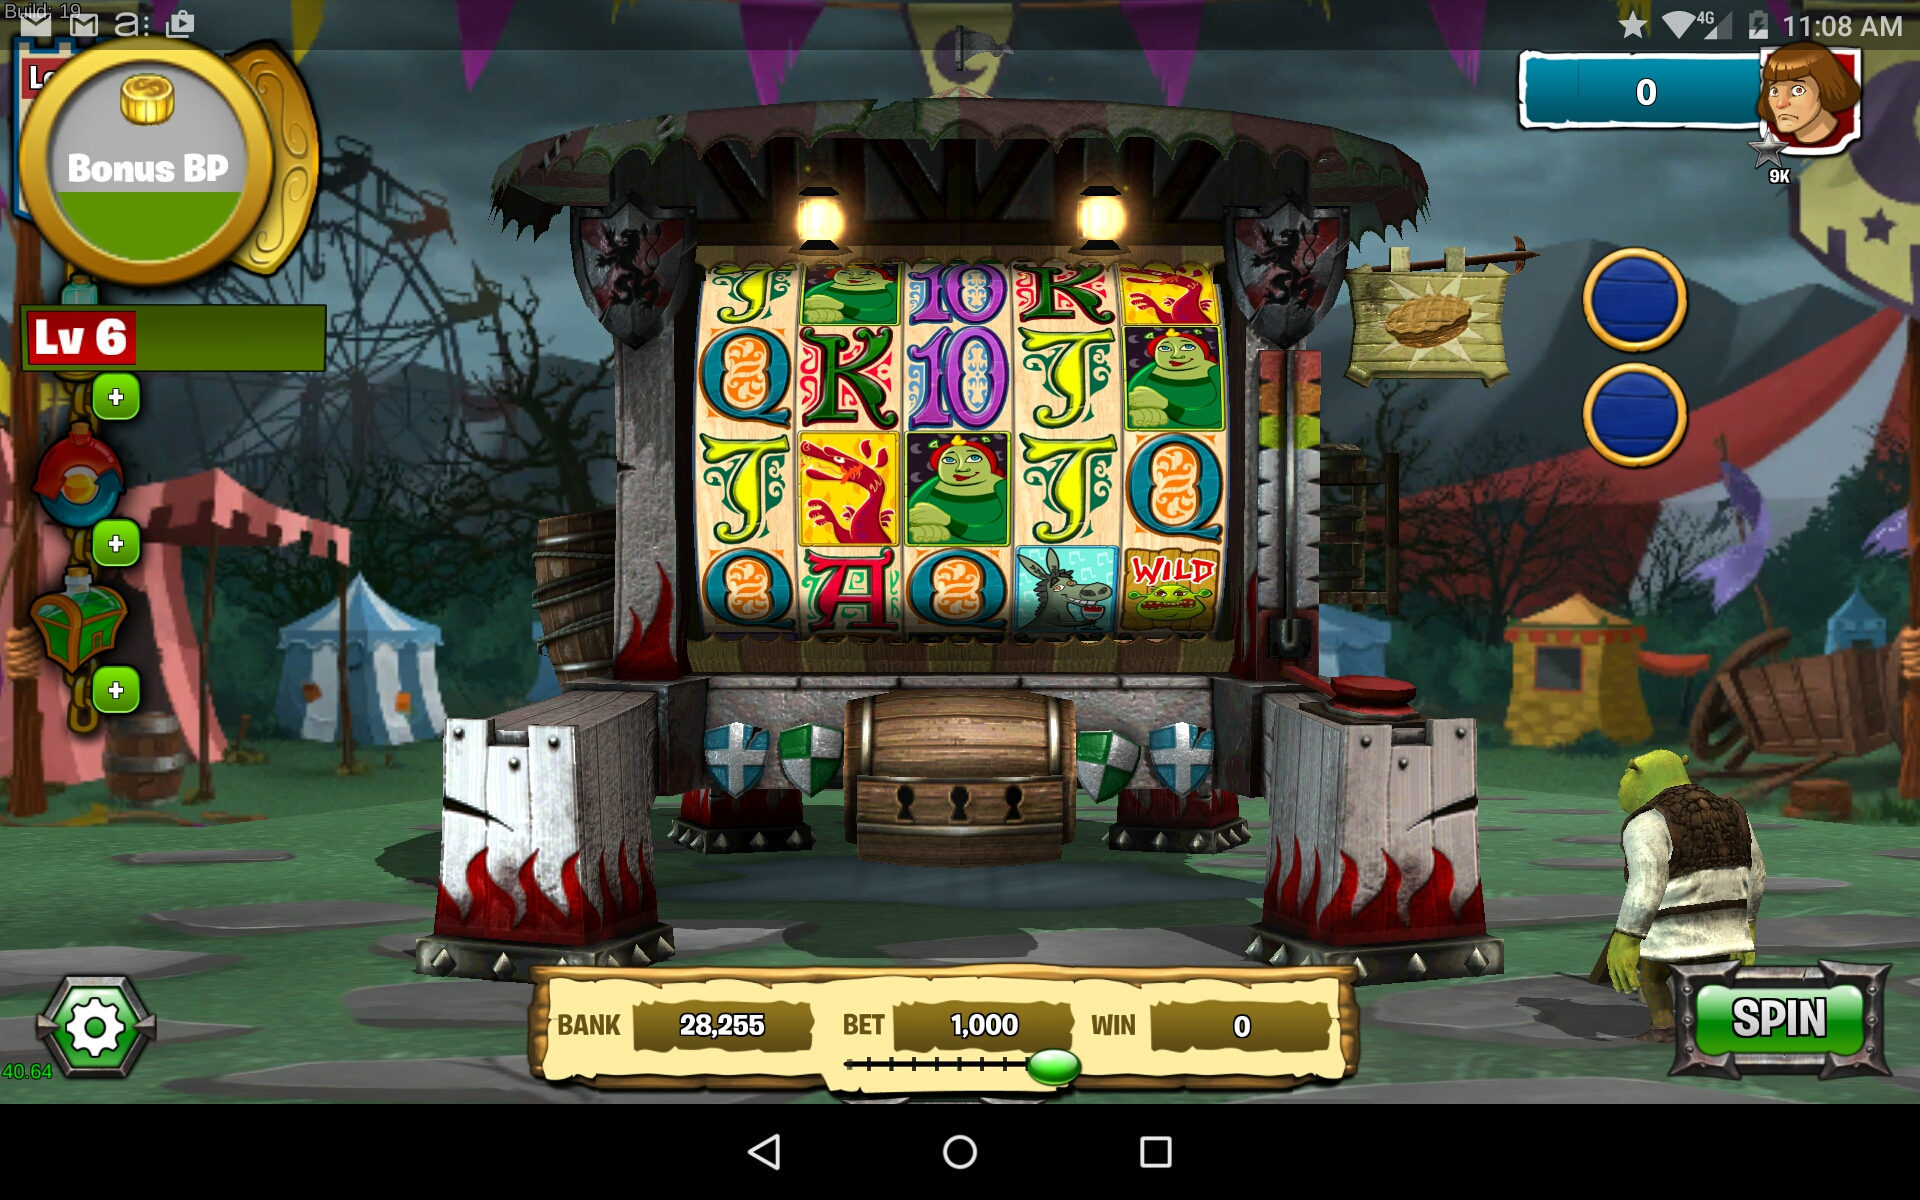 Shrek Vs Slots_20150319_110819